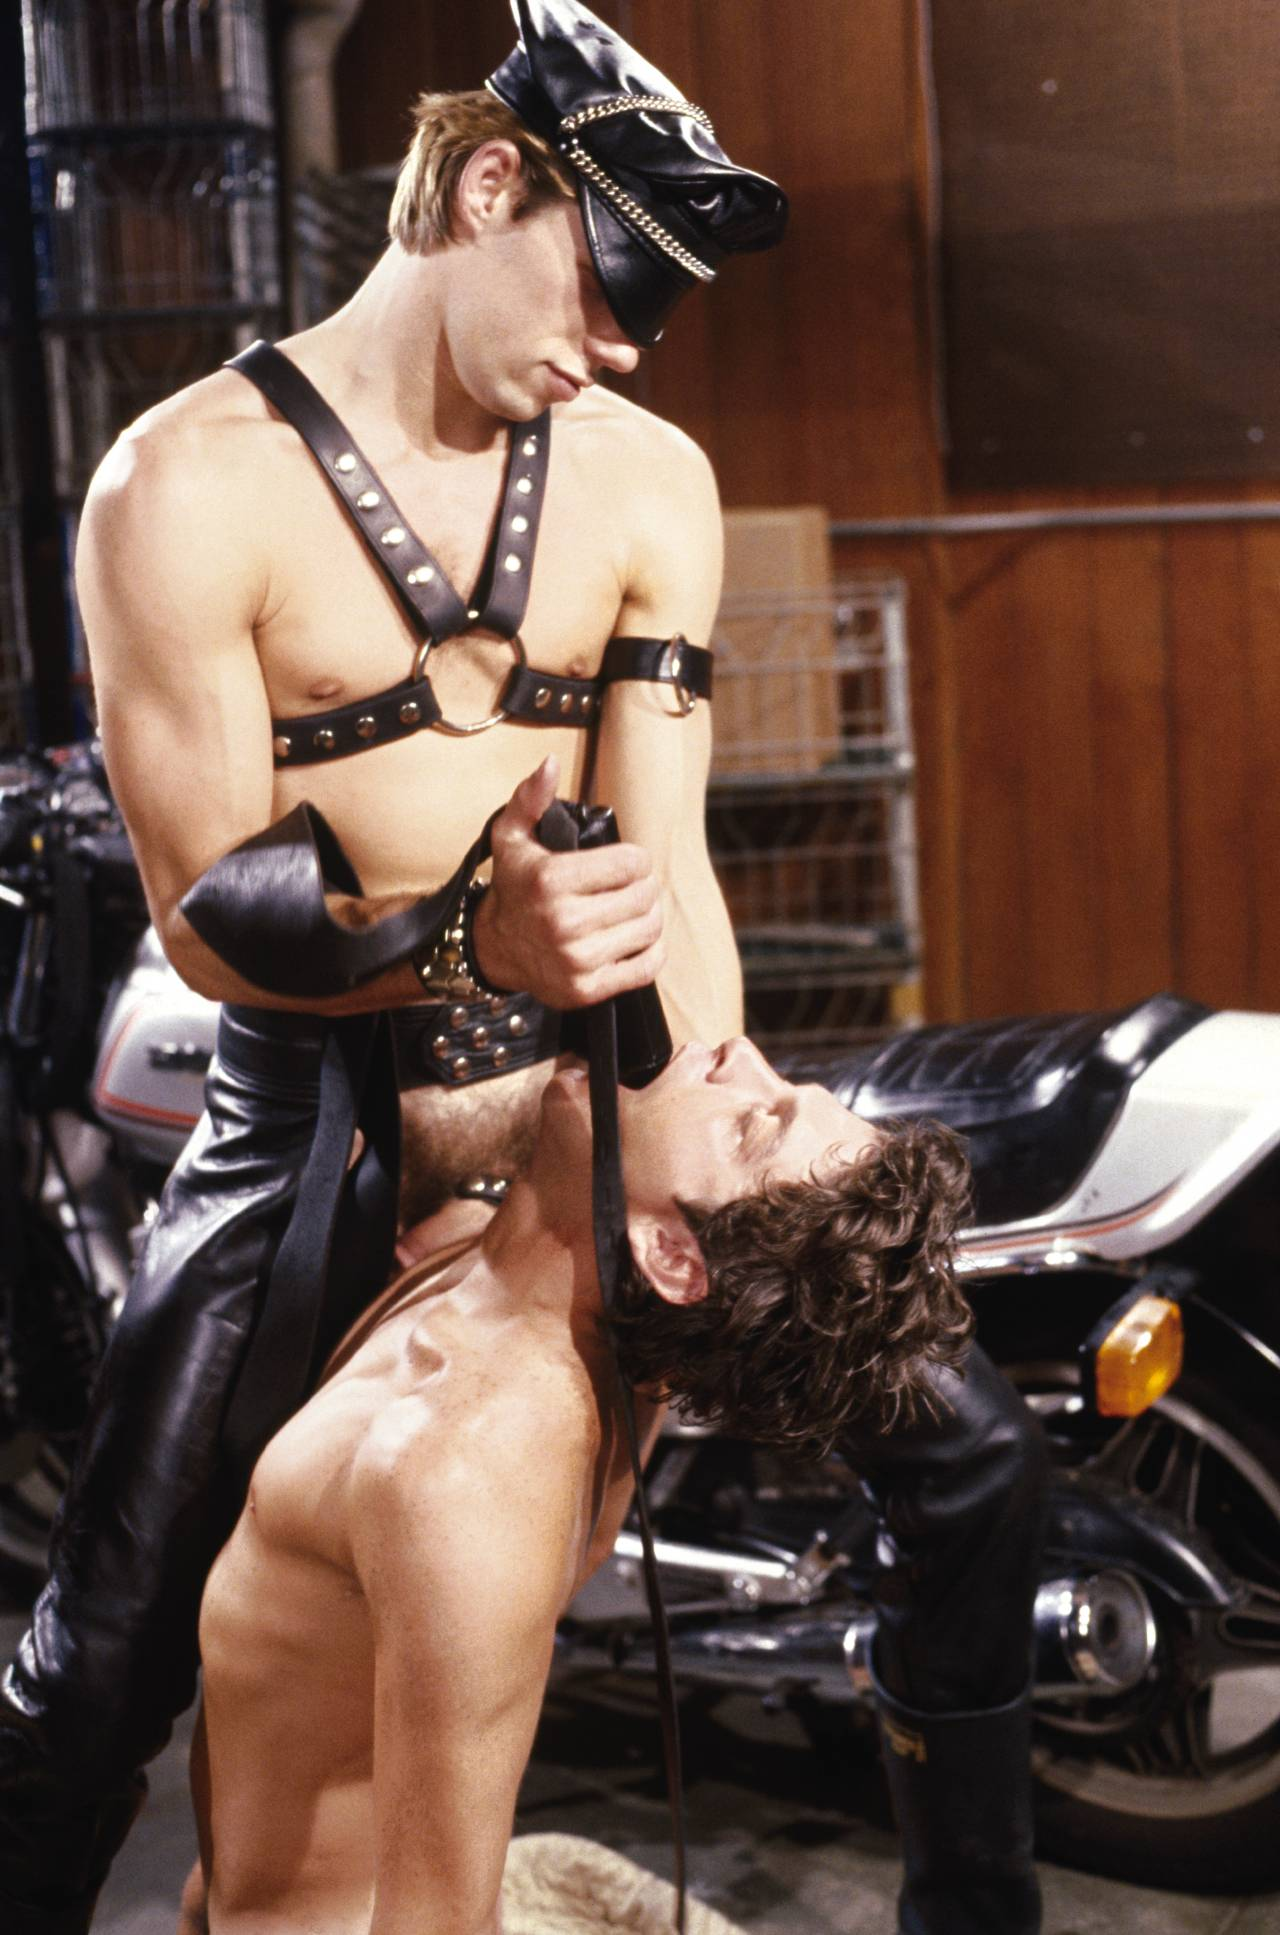 Tim Kramer  Mac Turner vintage gay hot daddy dude porn Biker's Liberty